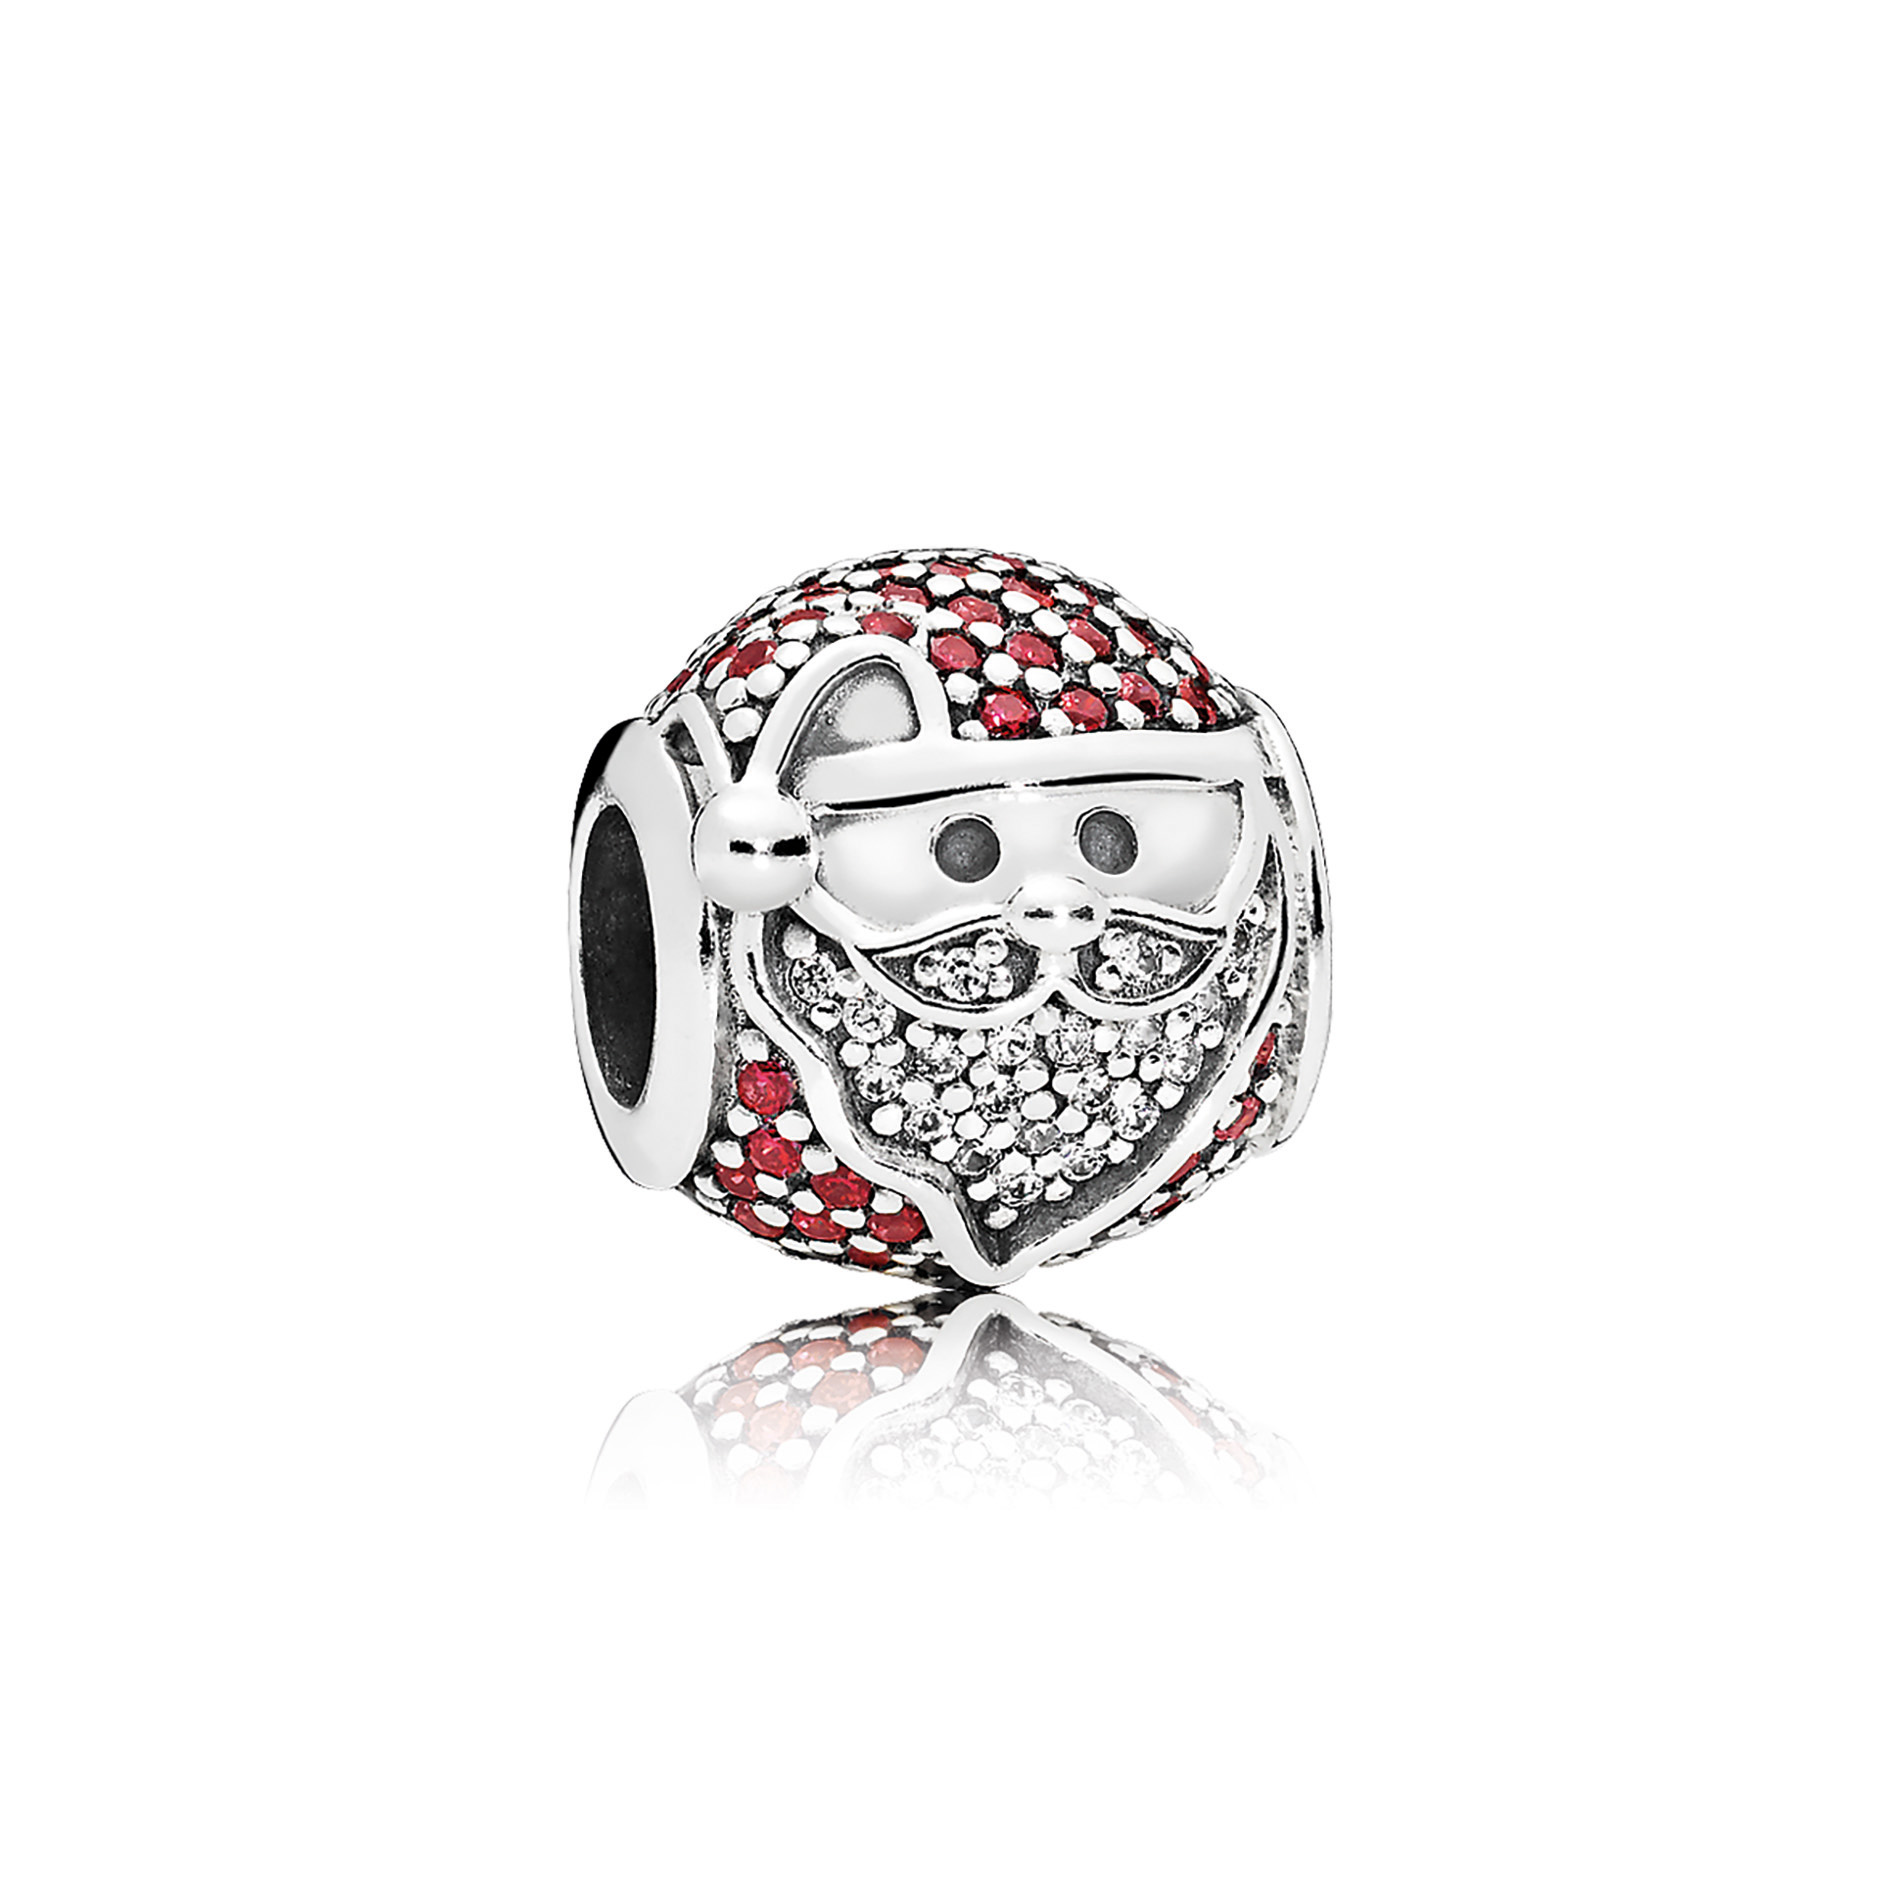 The Sparkling Jolly Santa charm from PANDORA Jewelry's Winter collection shines bright this season